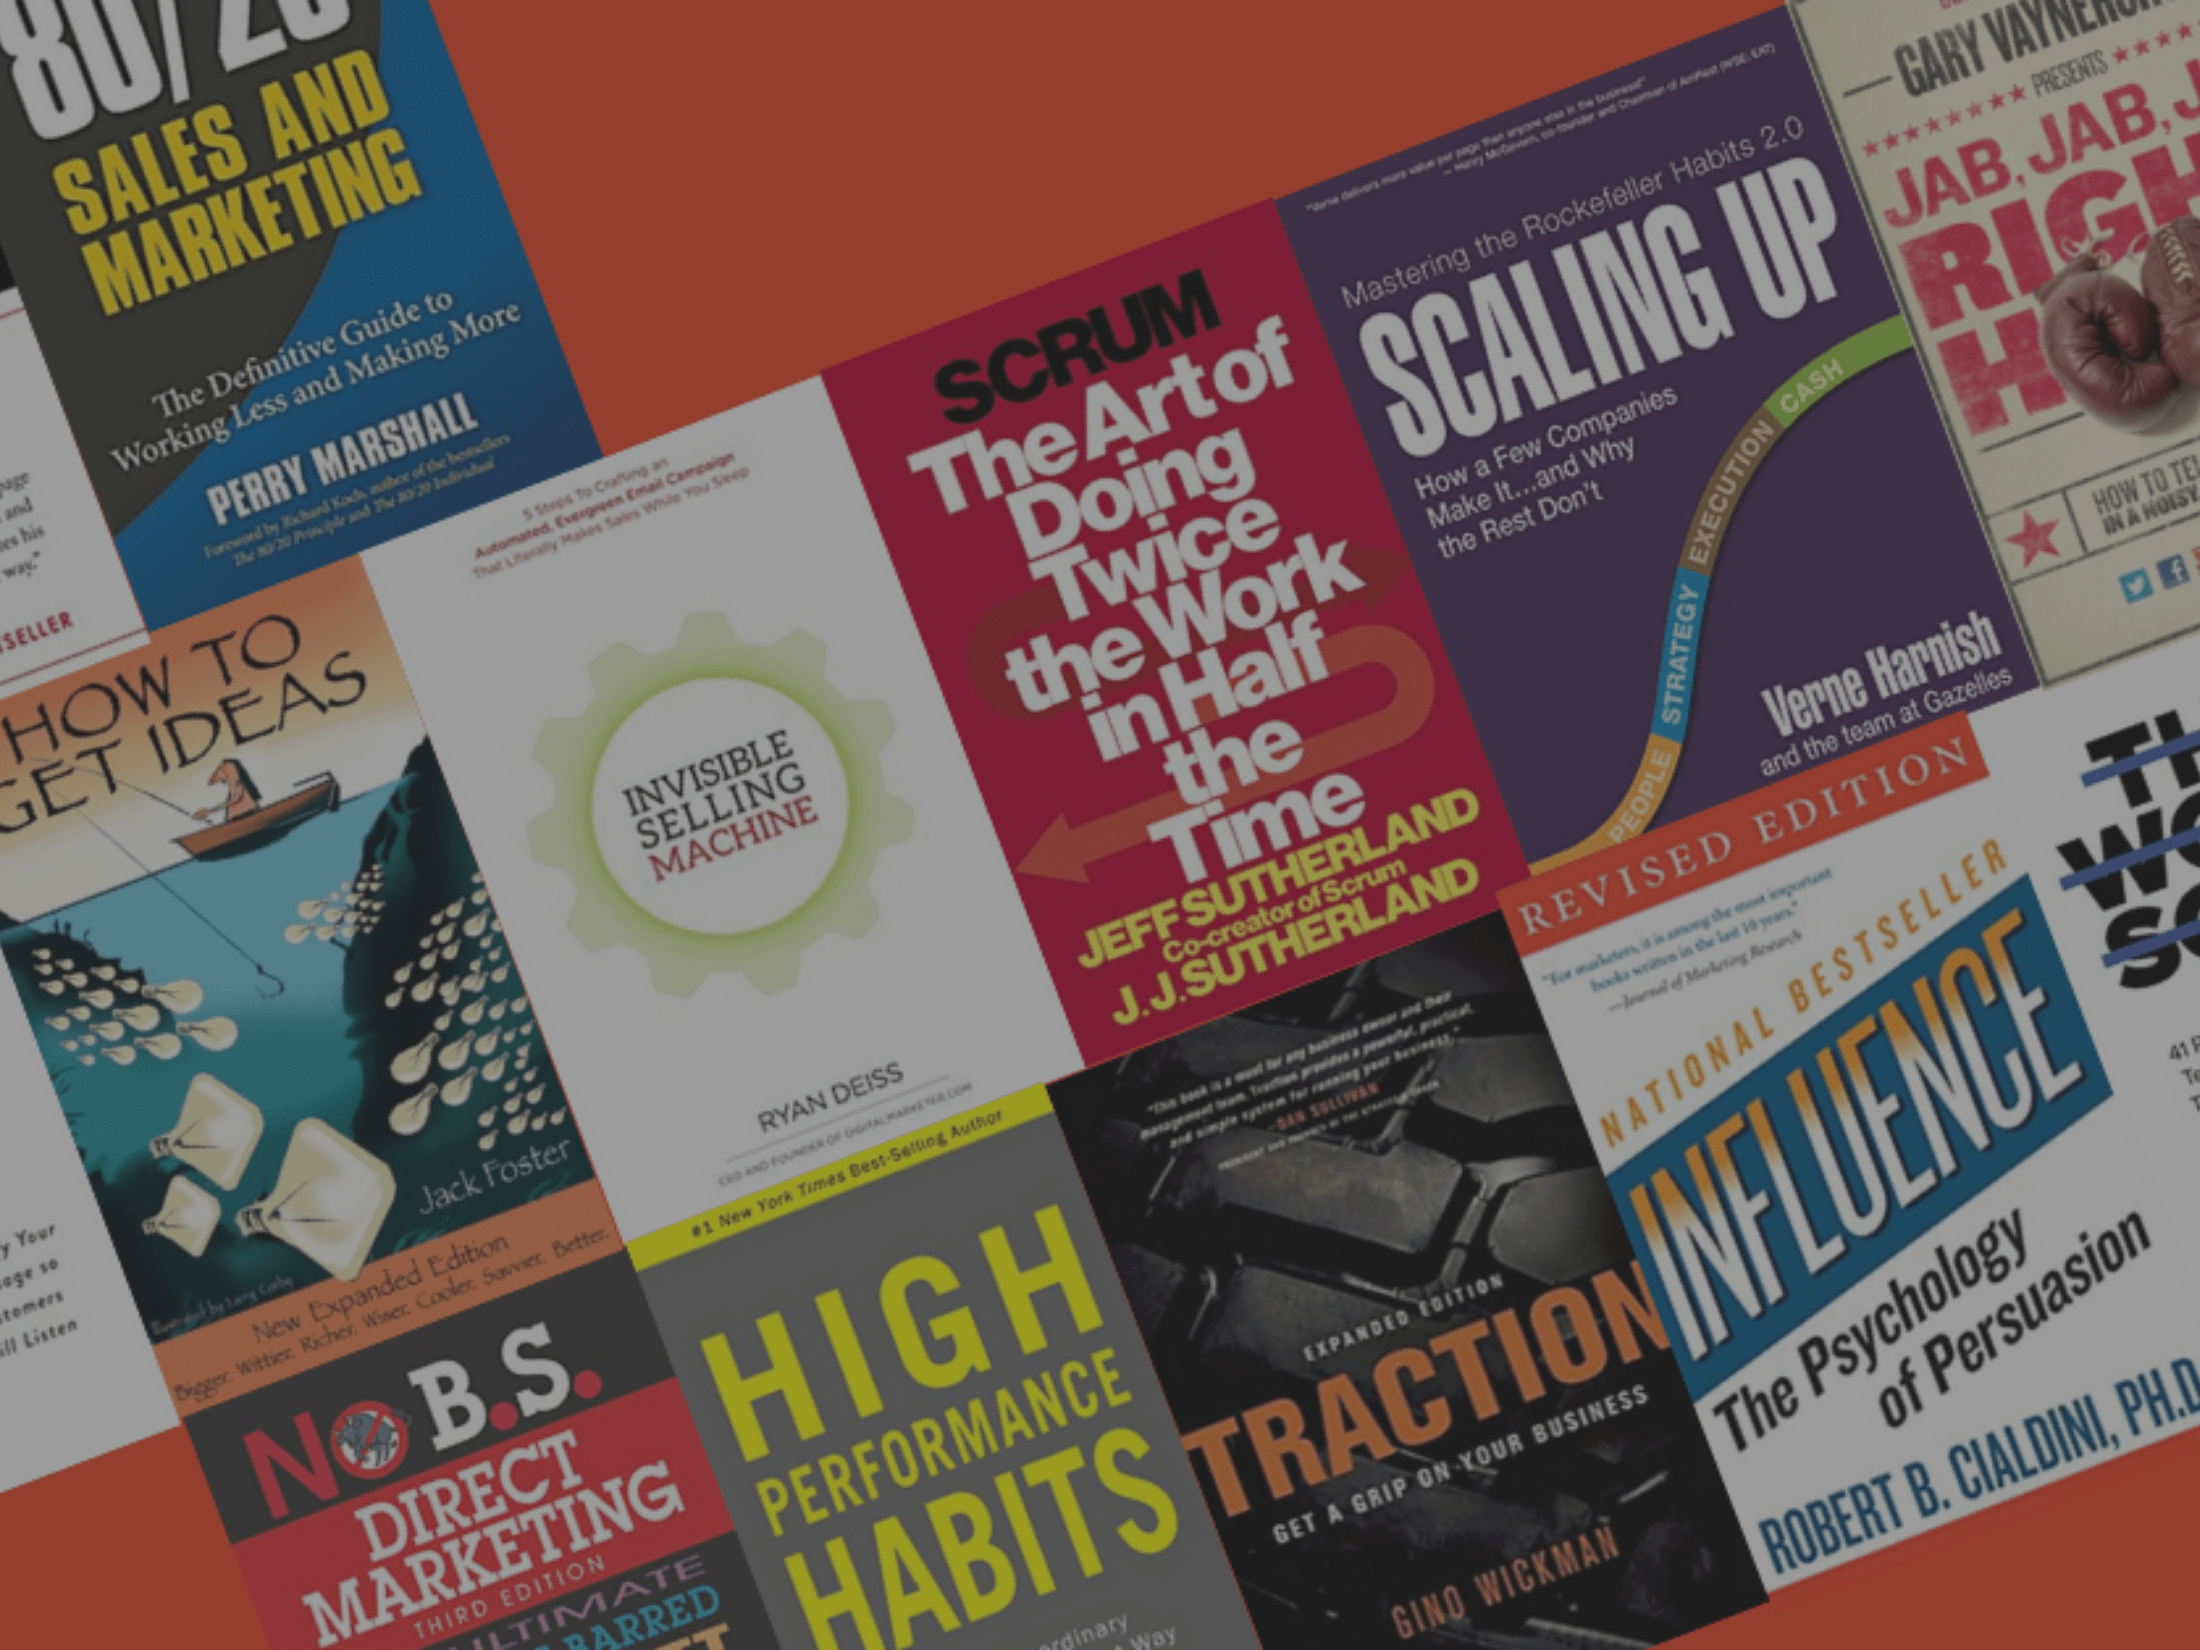 Steep's Top 13 Books Every Financial Advisor Should Read In 2020